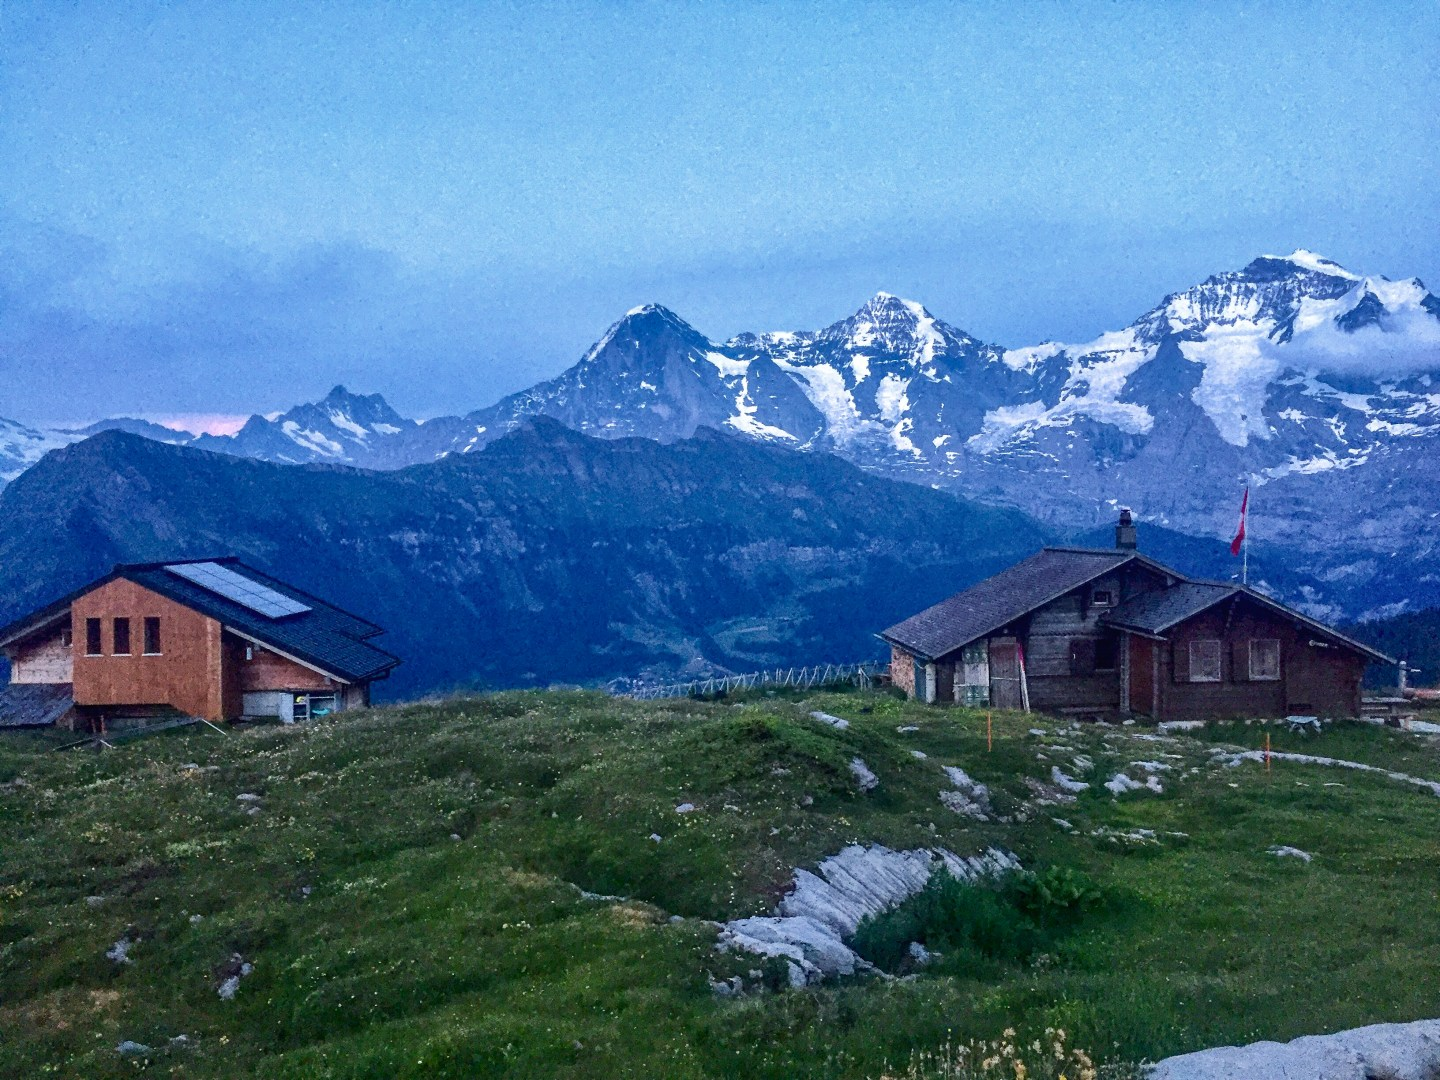 Backpacking in the Swiss Alps: Lobhornhütte